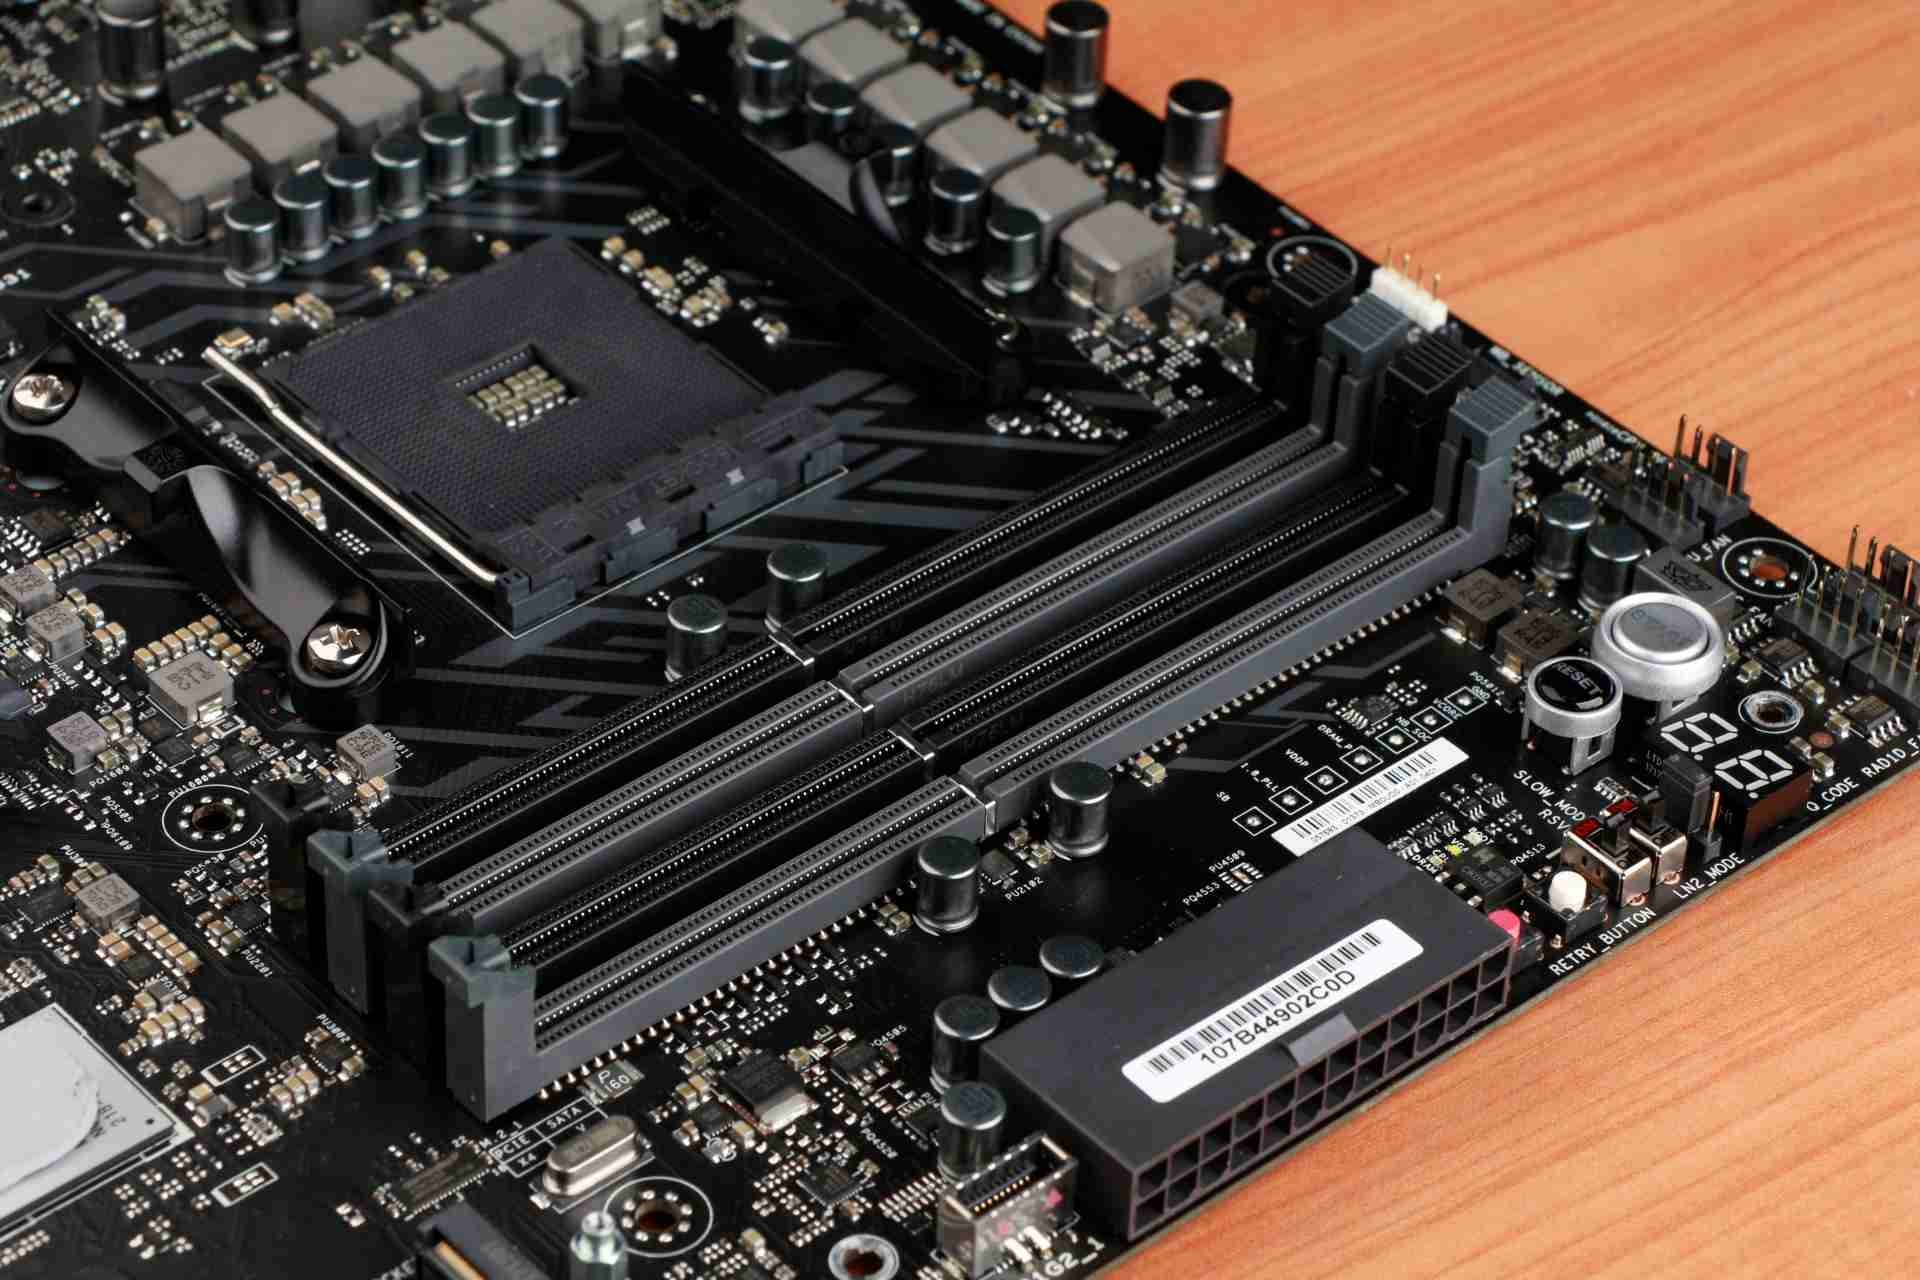 ASUS CROSSHAIR VI EXTREME; FEATURES